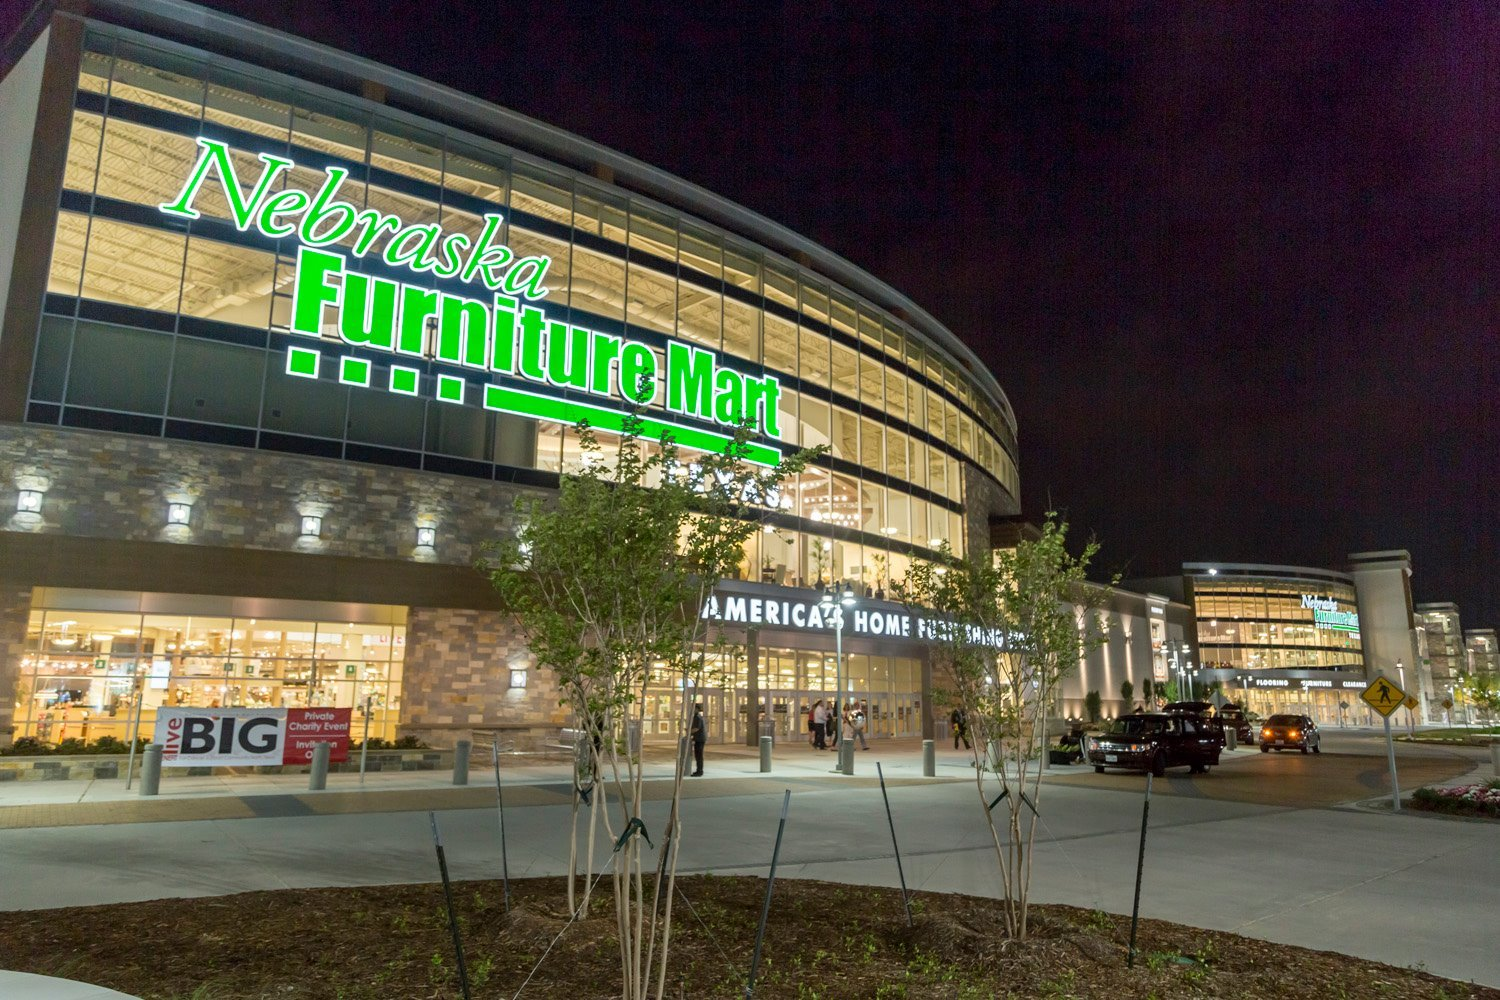 Nebraska Furniture Mart Omaha Hours was uploaded on July 7, at pm. This post is posted in the Furniture category. Nebraska Furniture Mart Omaha Hours is labelled with Nebraska Furniture Mart Omaha Hours, Nebraska, Furniture, Mart, Omaha, Hours.